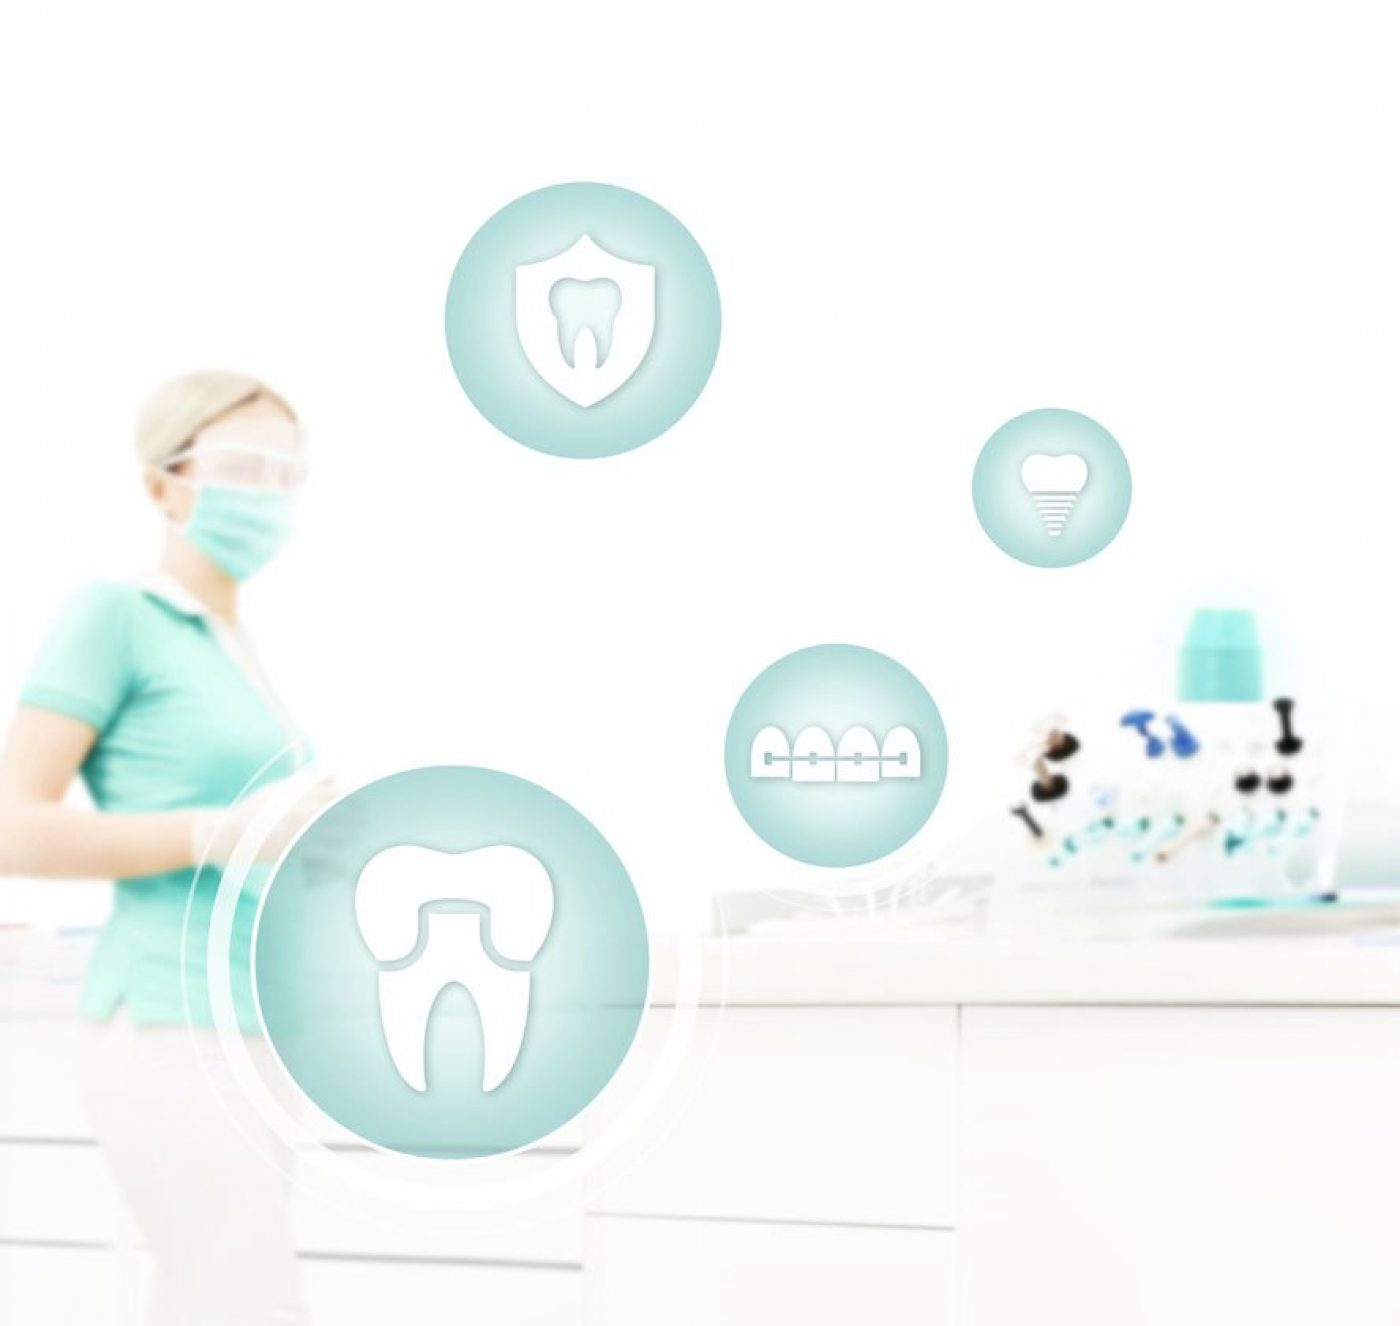 Parkdale Advicecare Commondentalconditions